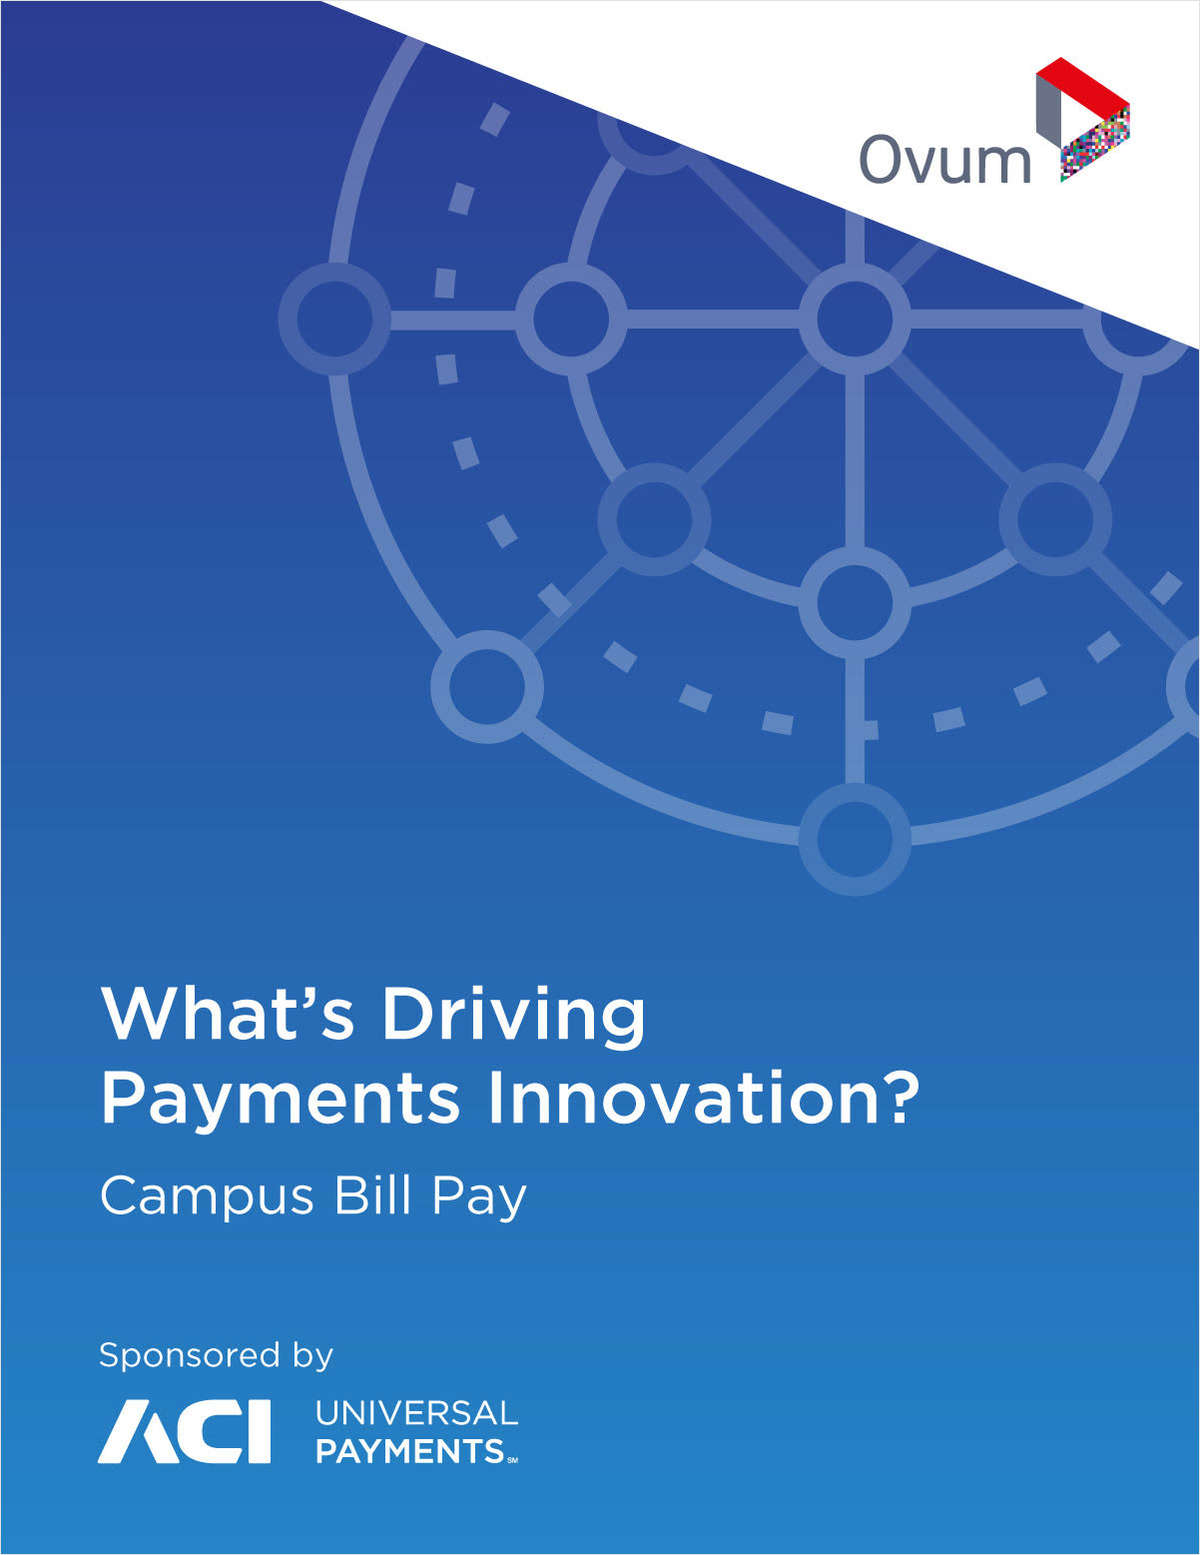 Is Your Campus a Payments Trailblazer?